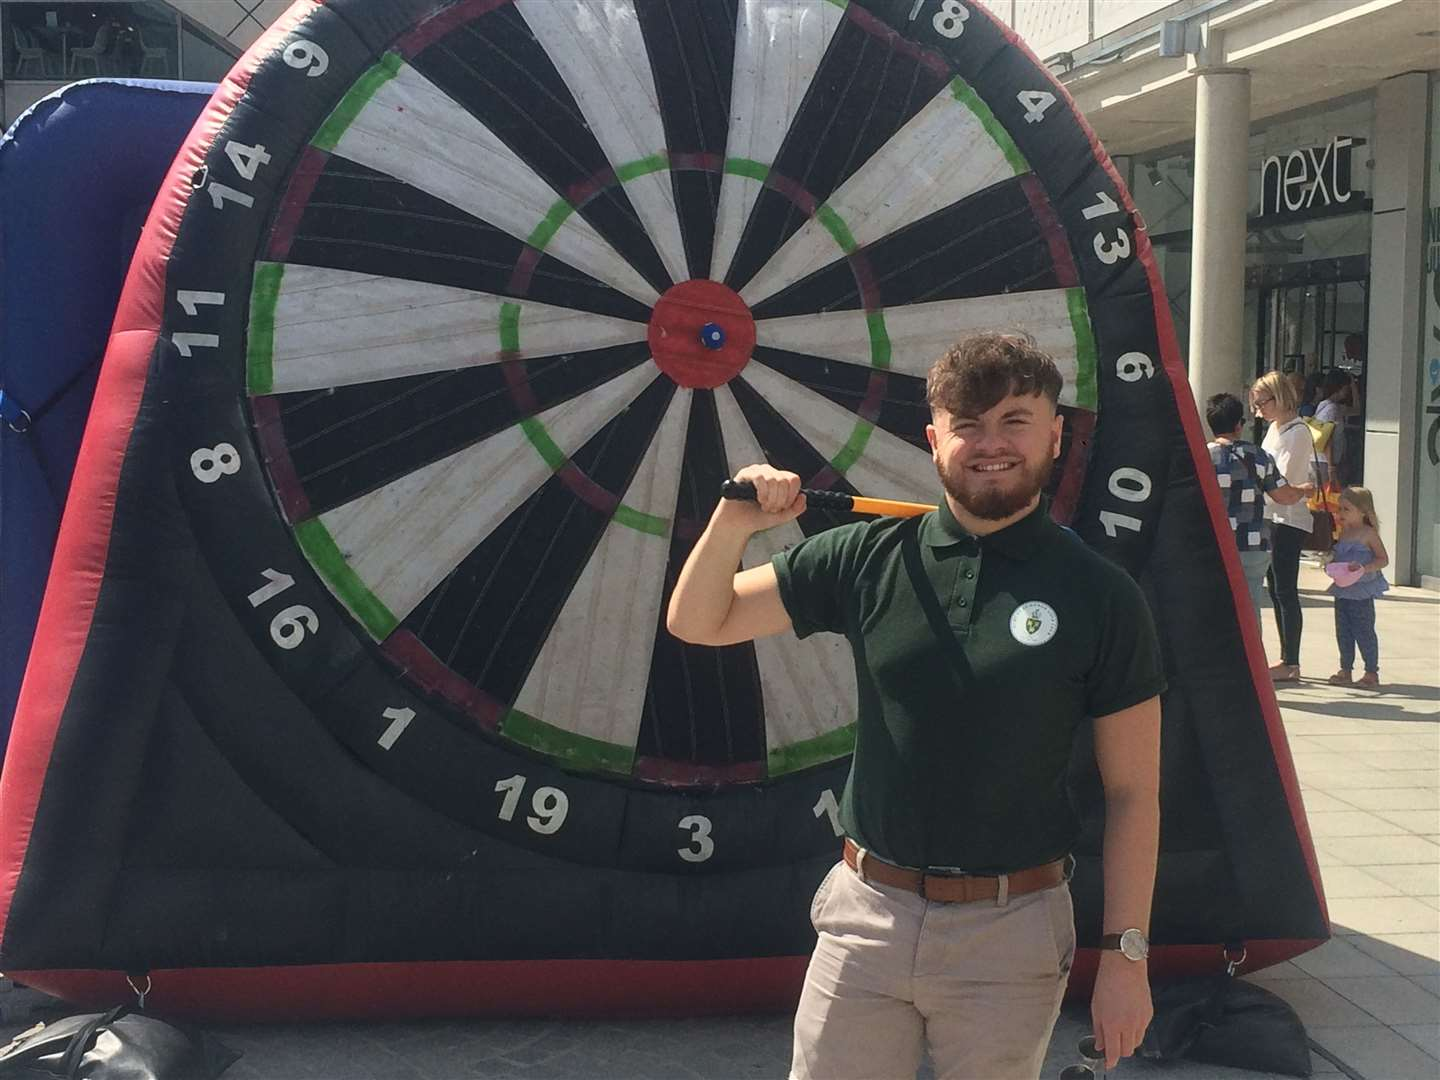 Bury Free Press advertising sales executive and Ipswich Town columnist Joseph Sadler trying his luck at the golf darts board (14659659)